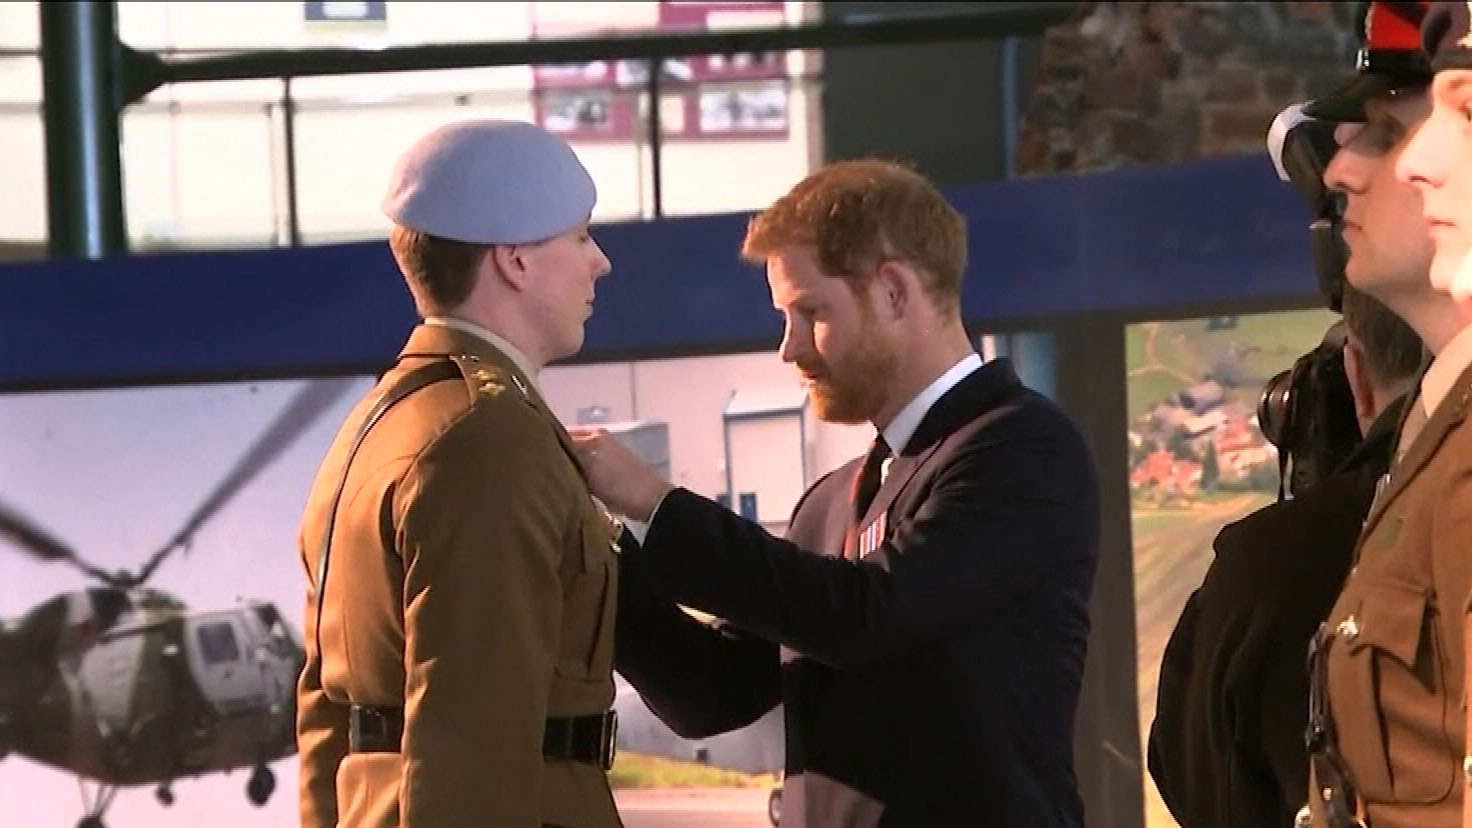 Prince Harry presents new pilots with wings